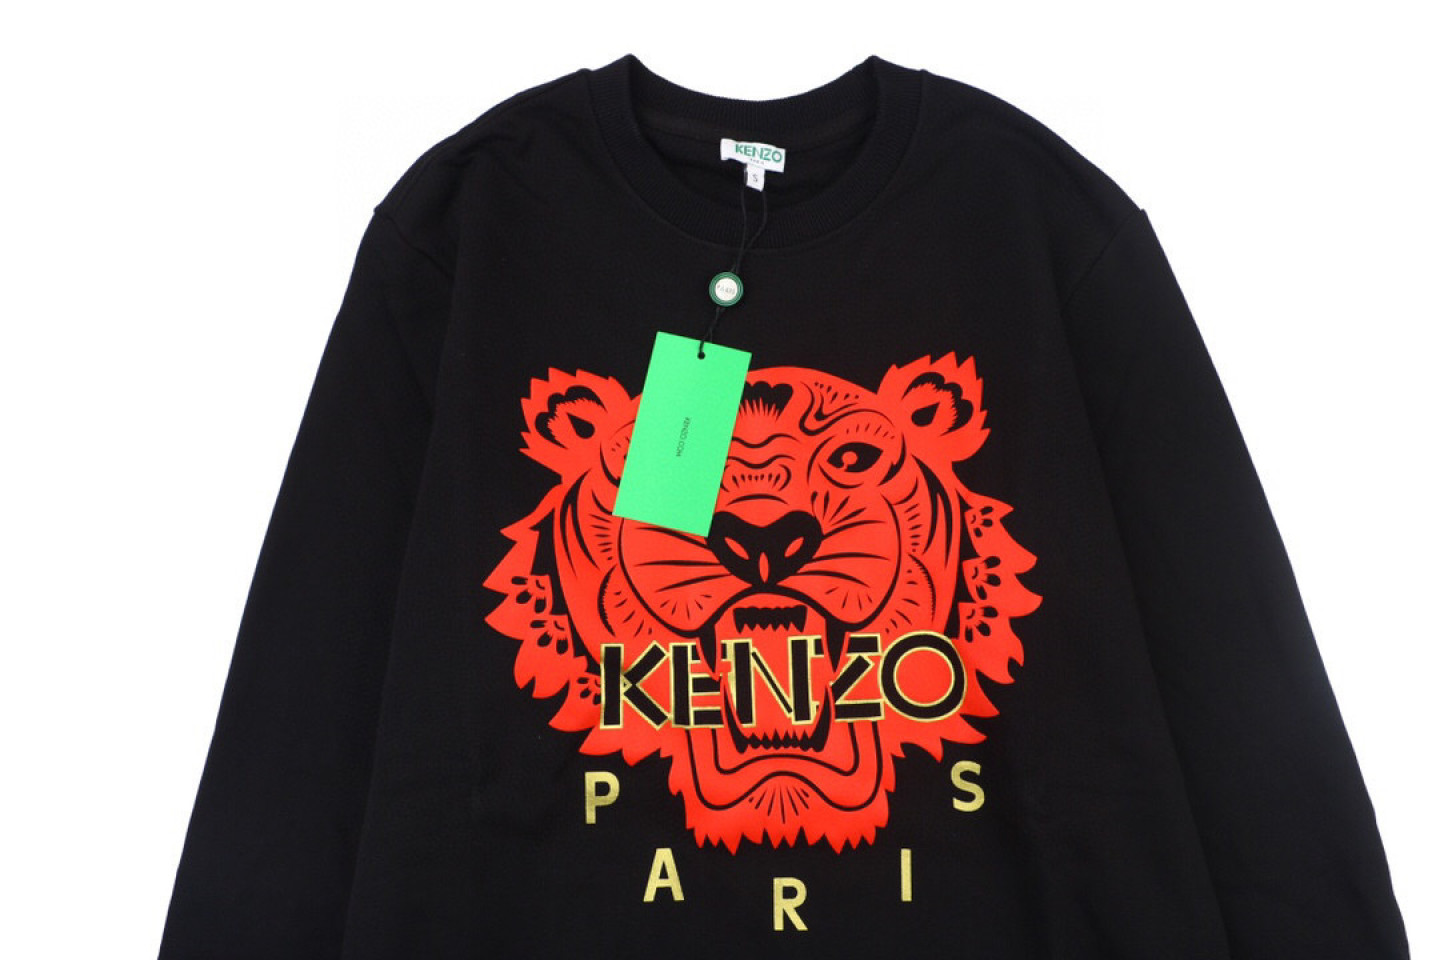 Shirt Kenzo black gold and red tiger head sweater 2 kenzo_black_gold_and_red_tiger_head_sweater_2